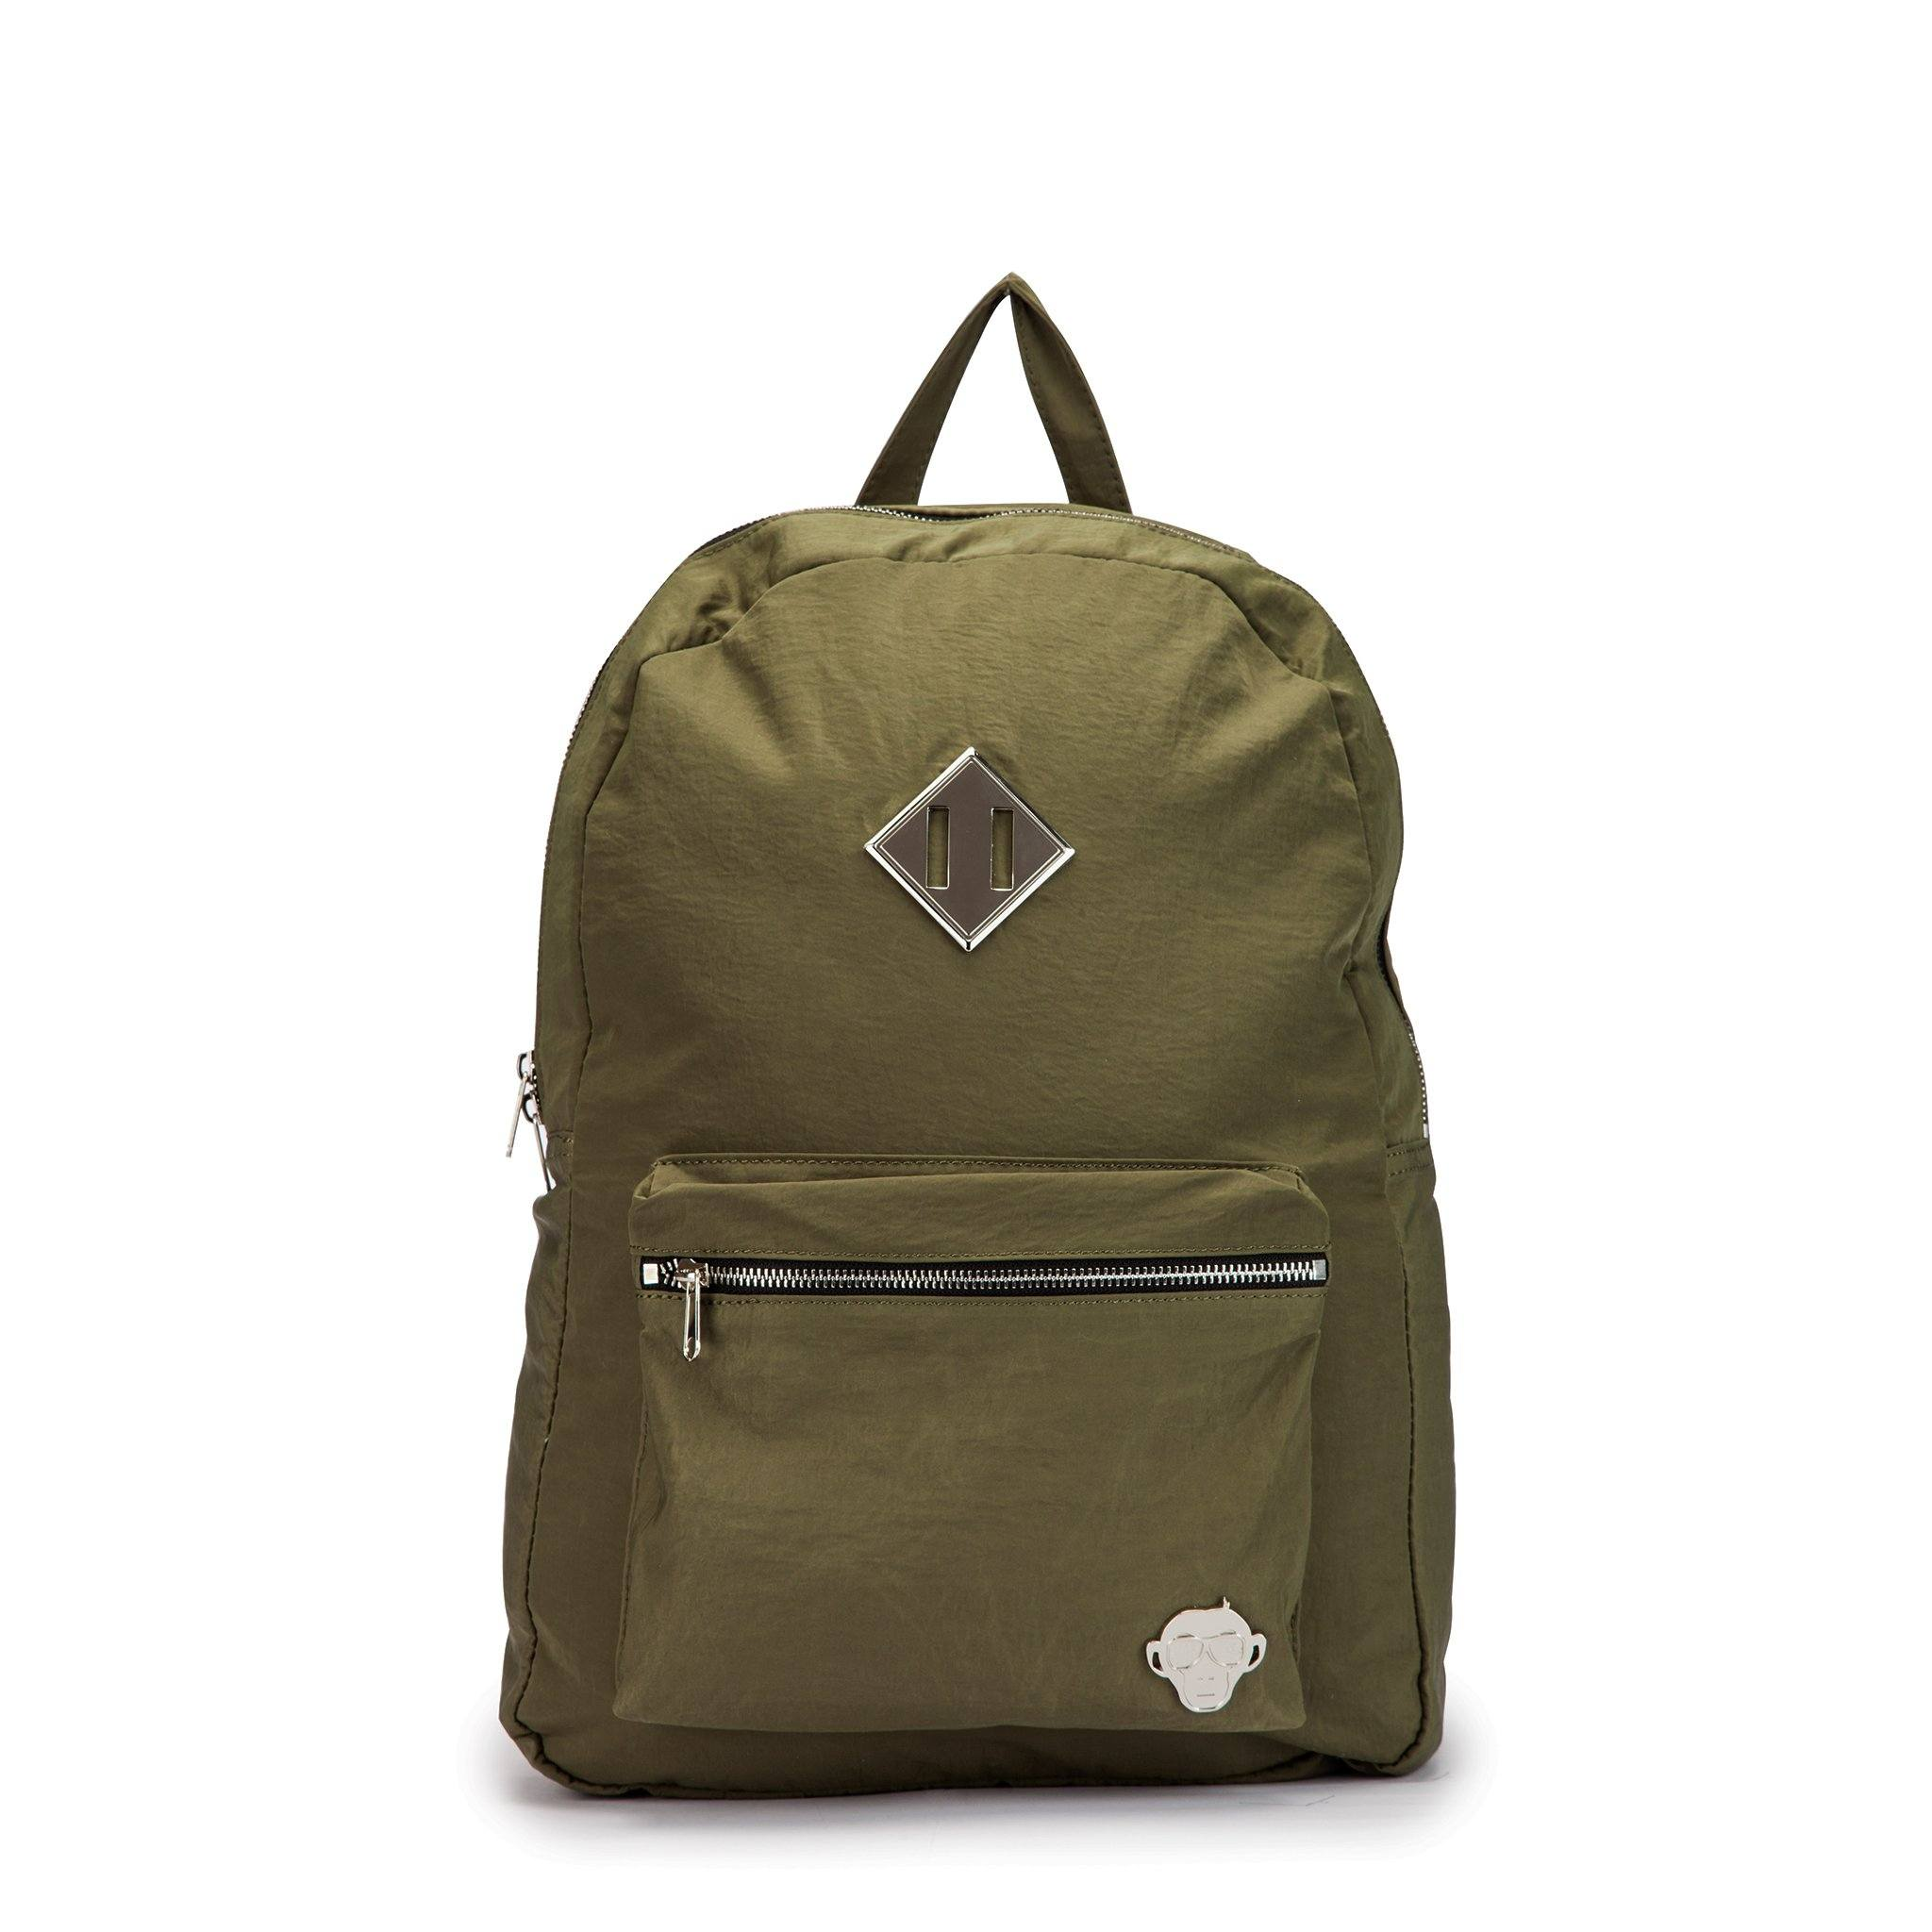 The Classic Bag - Matte Green